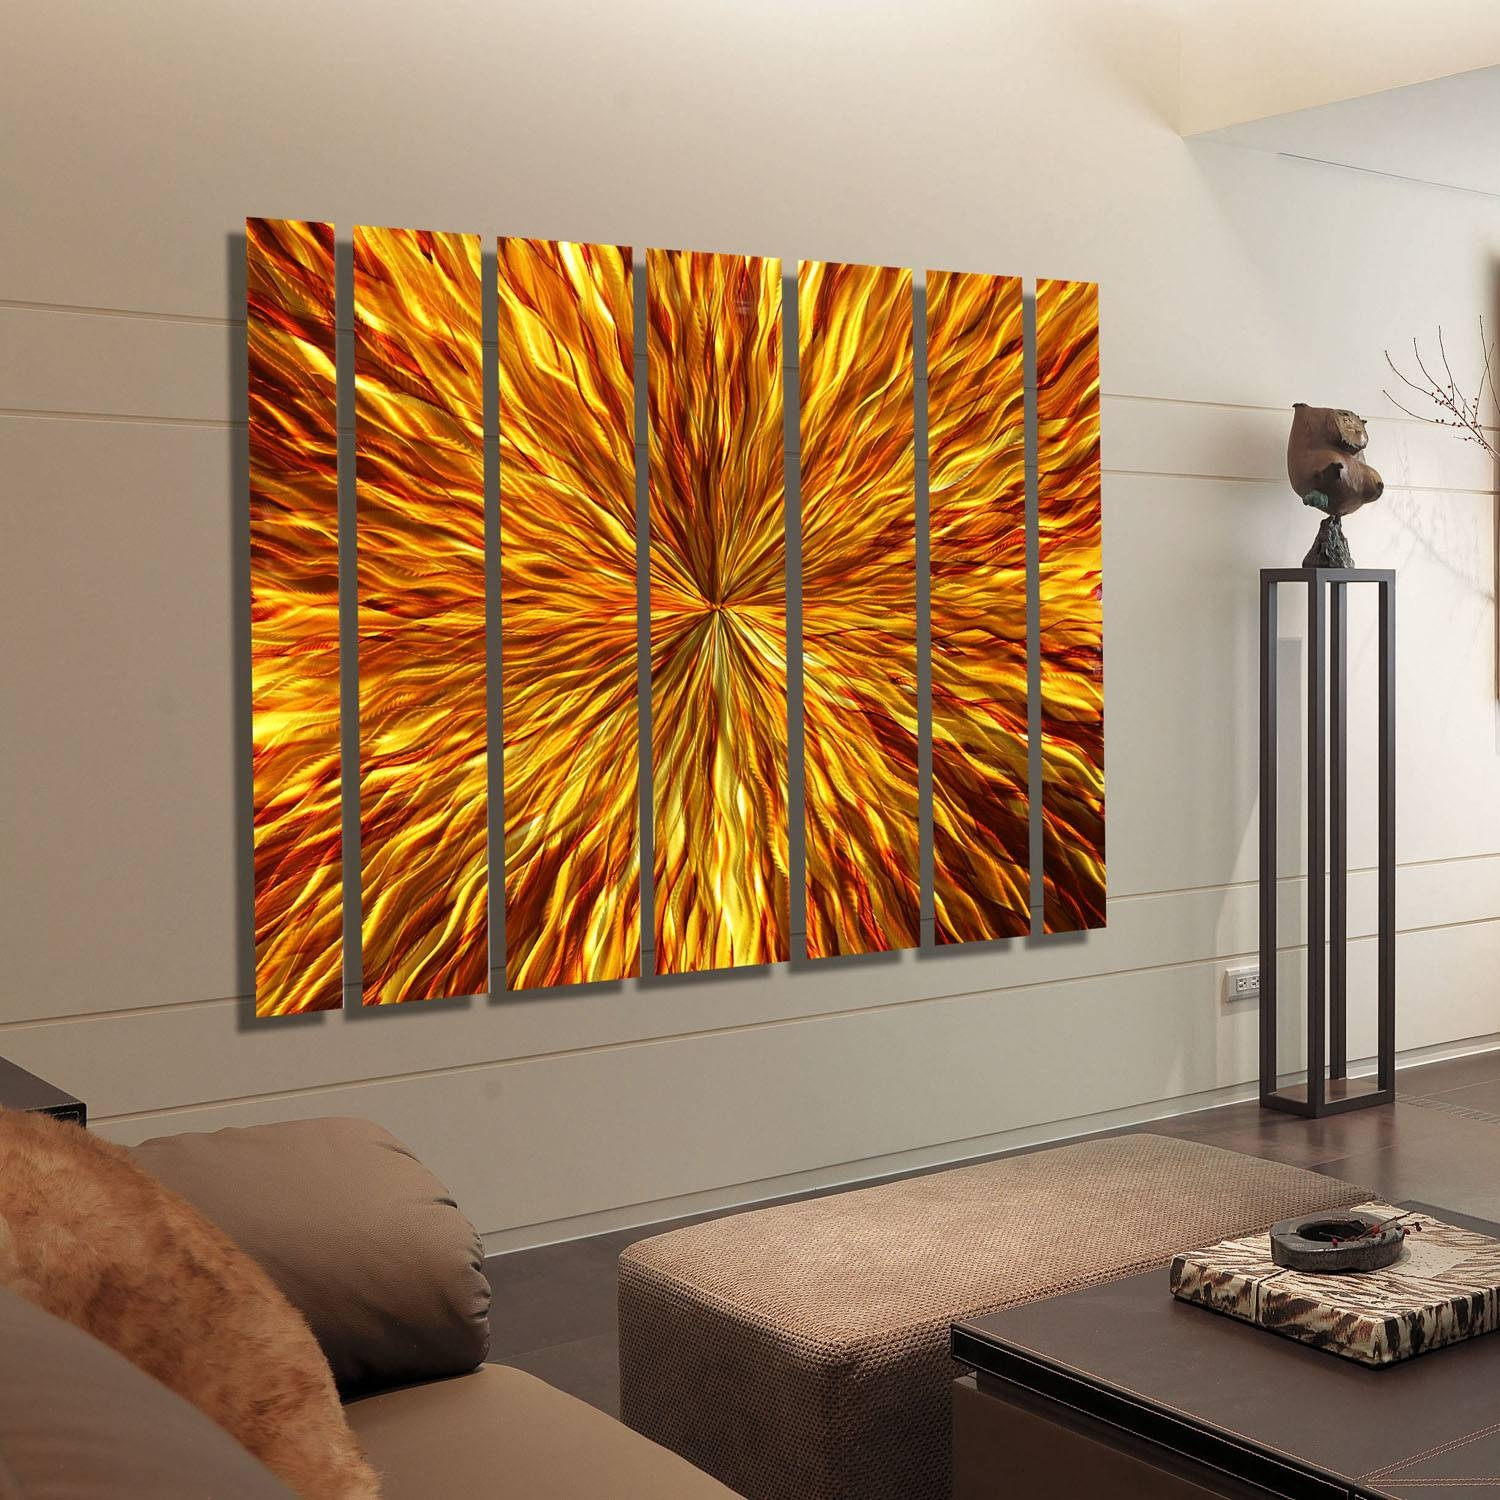 Amber Vortex Xl – Extra Large Modern Metal Wall Artjon Allen Pertaining To Most Up To Date Oversized Metal Wall Art (View 1 of 20)